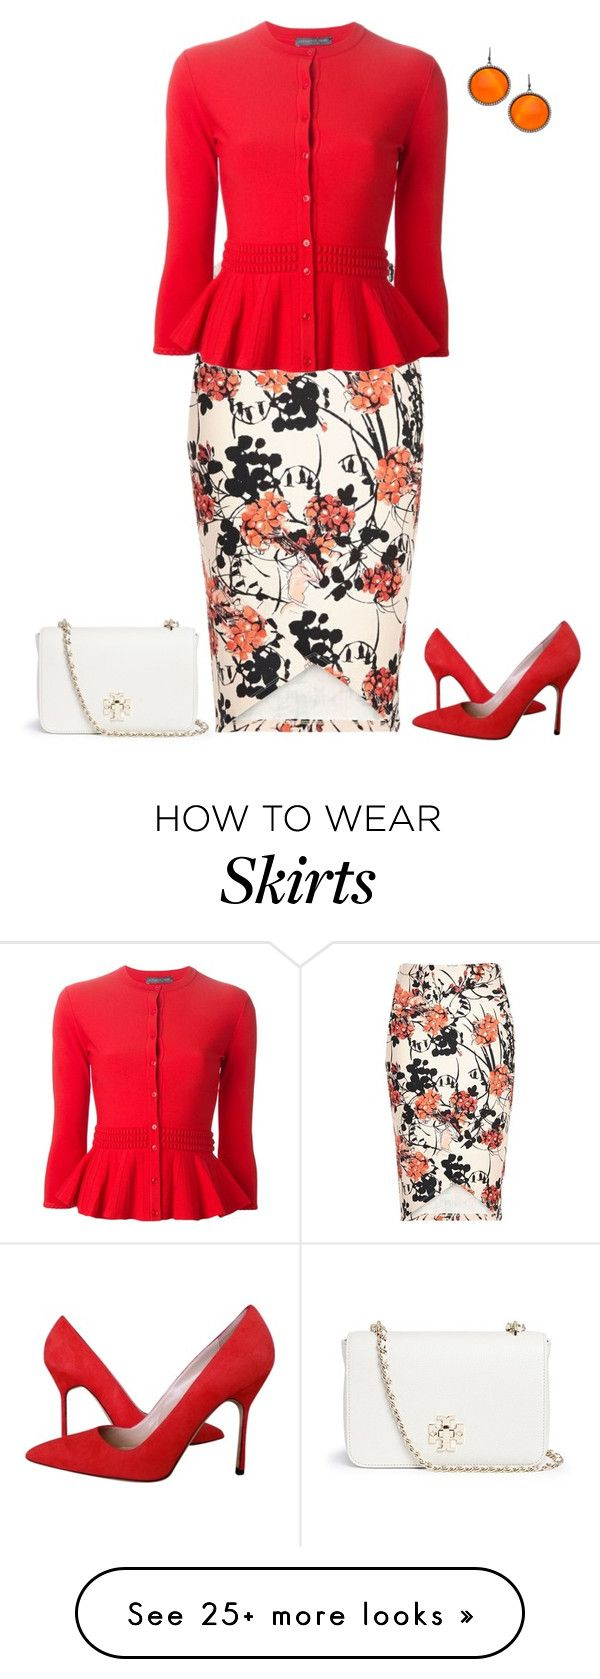 """""""outfit 3312"""" by natalyag on Polyvore featuring Tory Burch, River Island, Alexander McQueen, Manolo Blahnik, Madison Precious Jewels, women's clothing, women, female, woman and misses"""